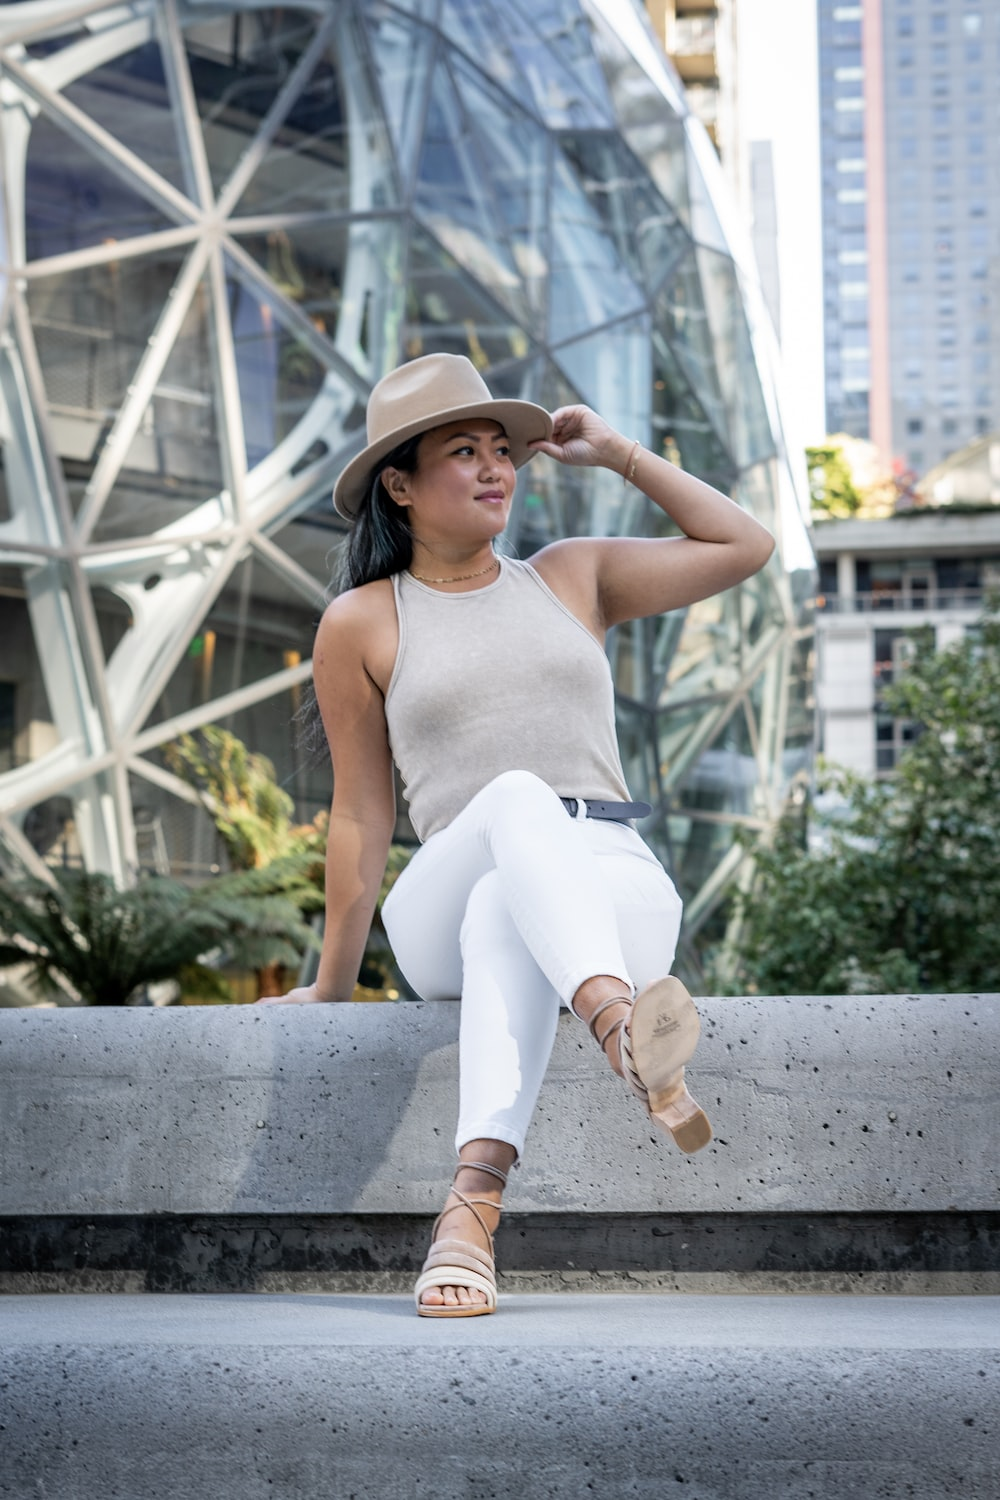 woman in white tank top and white pants sitting on concrete bench during daytime